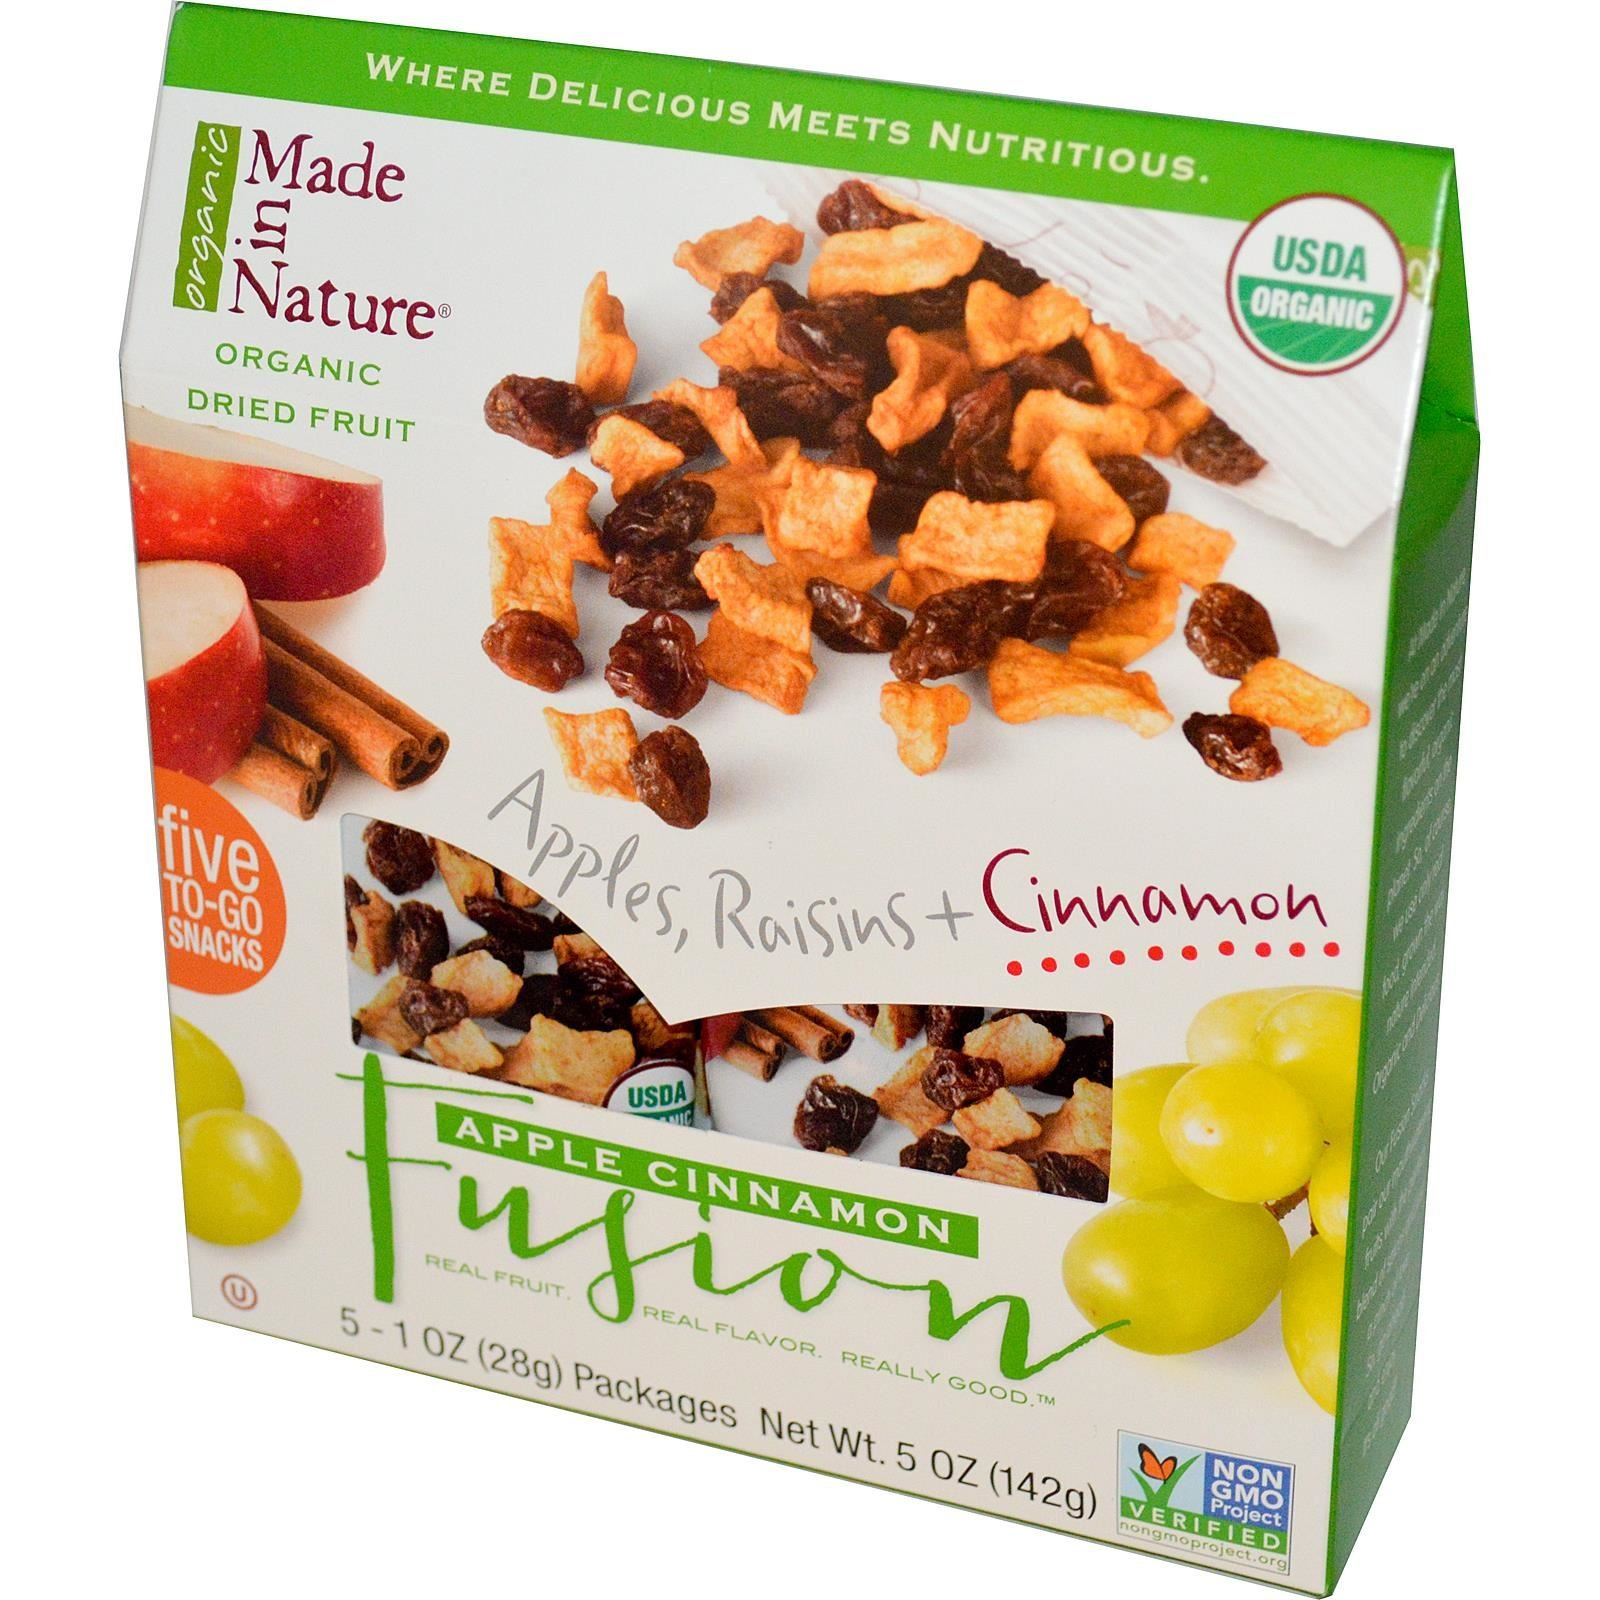 Made in Nature Organic Fruit Fusion Apple Cinnamon Supersnacks 5 Packages 1 oz 28 g Each